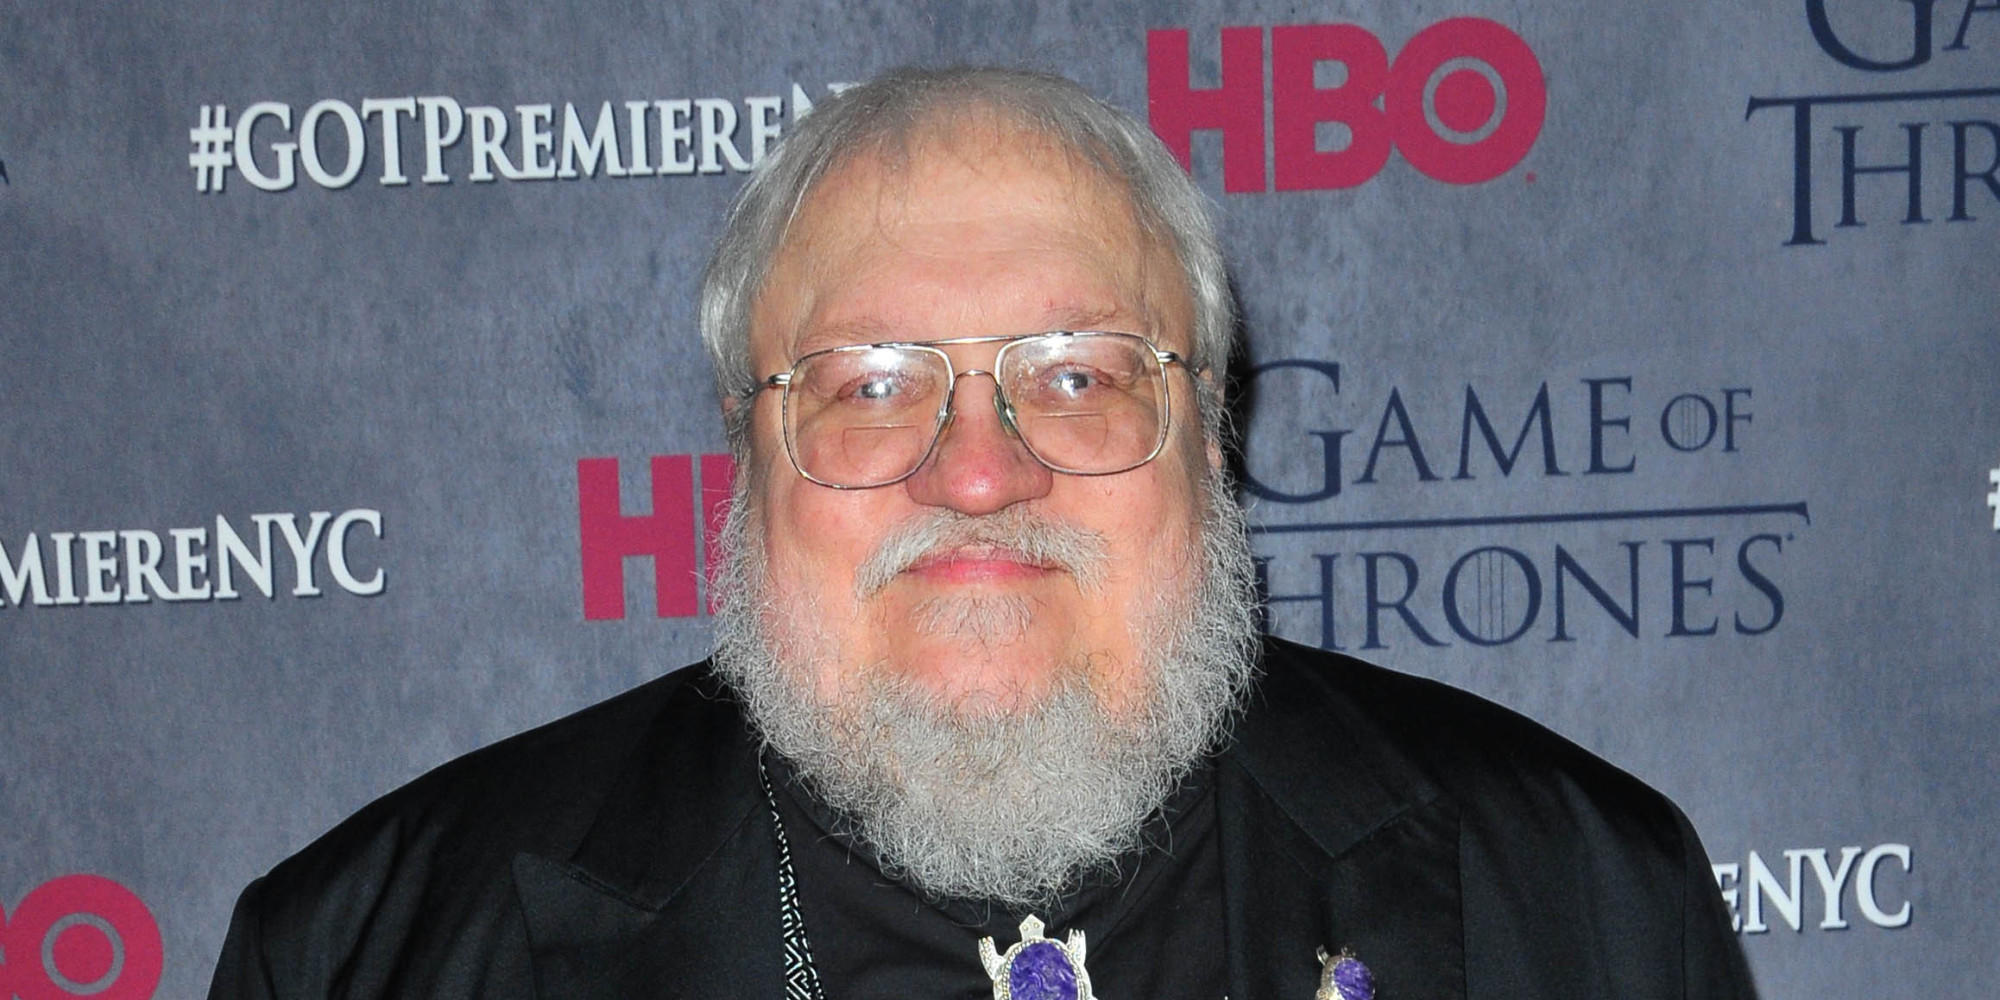 george rr martin George r r martin was born on september 20, 1948 in bayonne, new jersey  the son of a longshoreman, whose working class family lived not far from the.